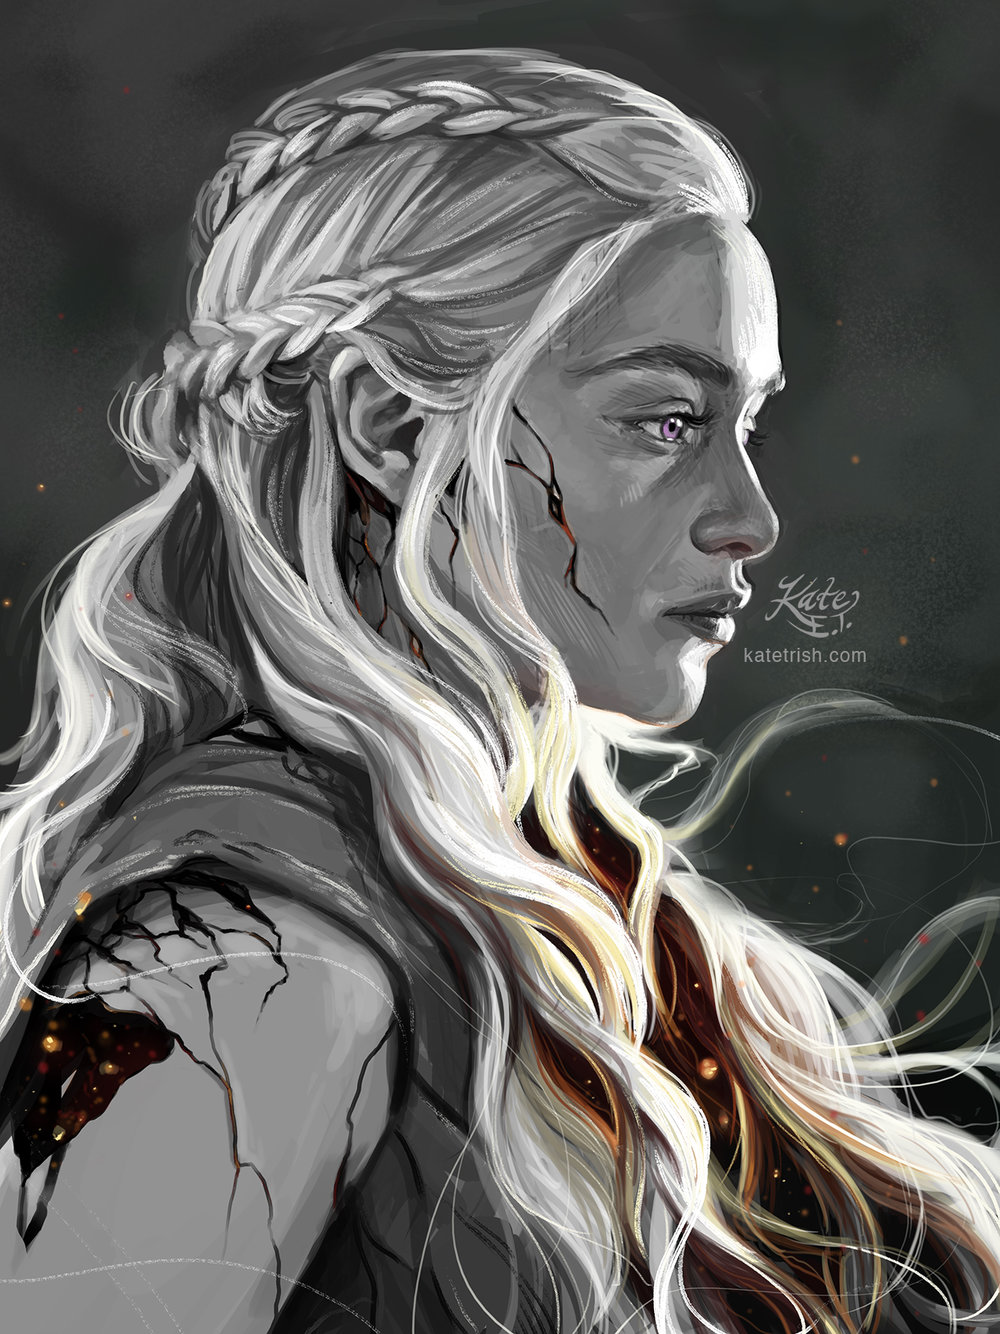 A Song of Fire: Daenerys Targaryen (Game of Thrones)